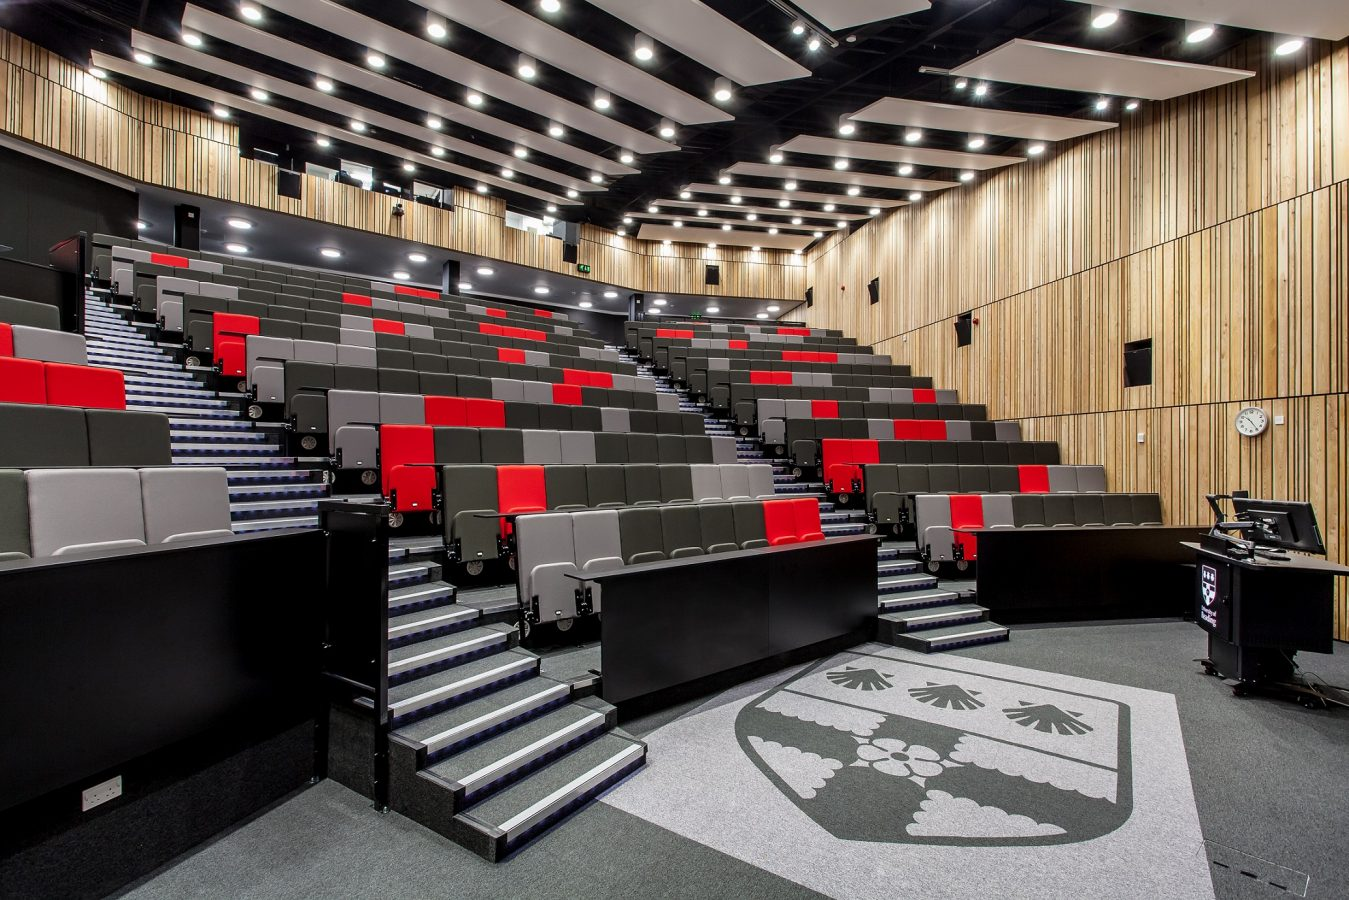 University of Reading | Audio Visual for Lecture Theatre| Snelling Business Systems